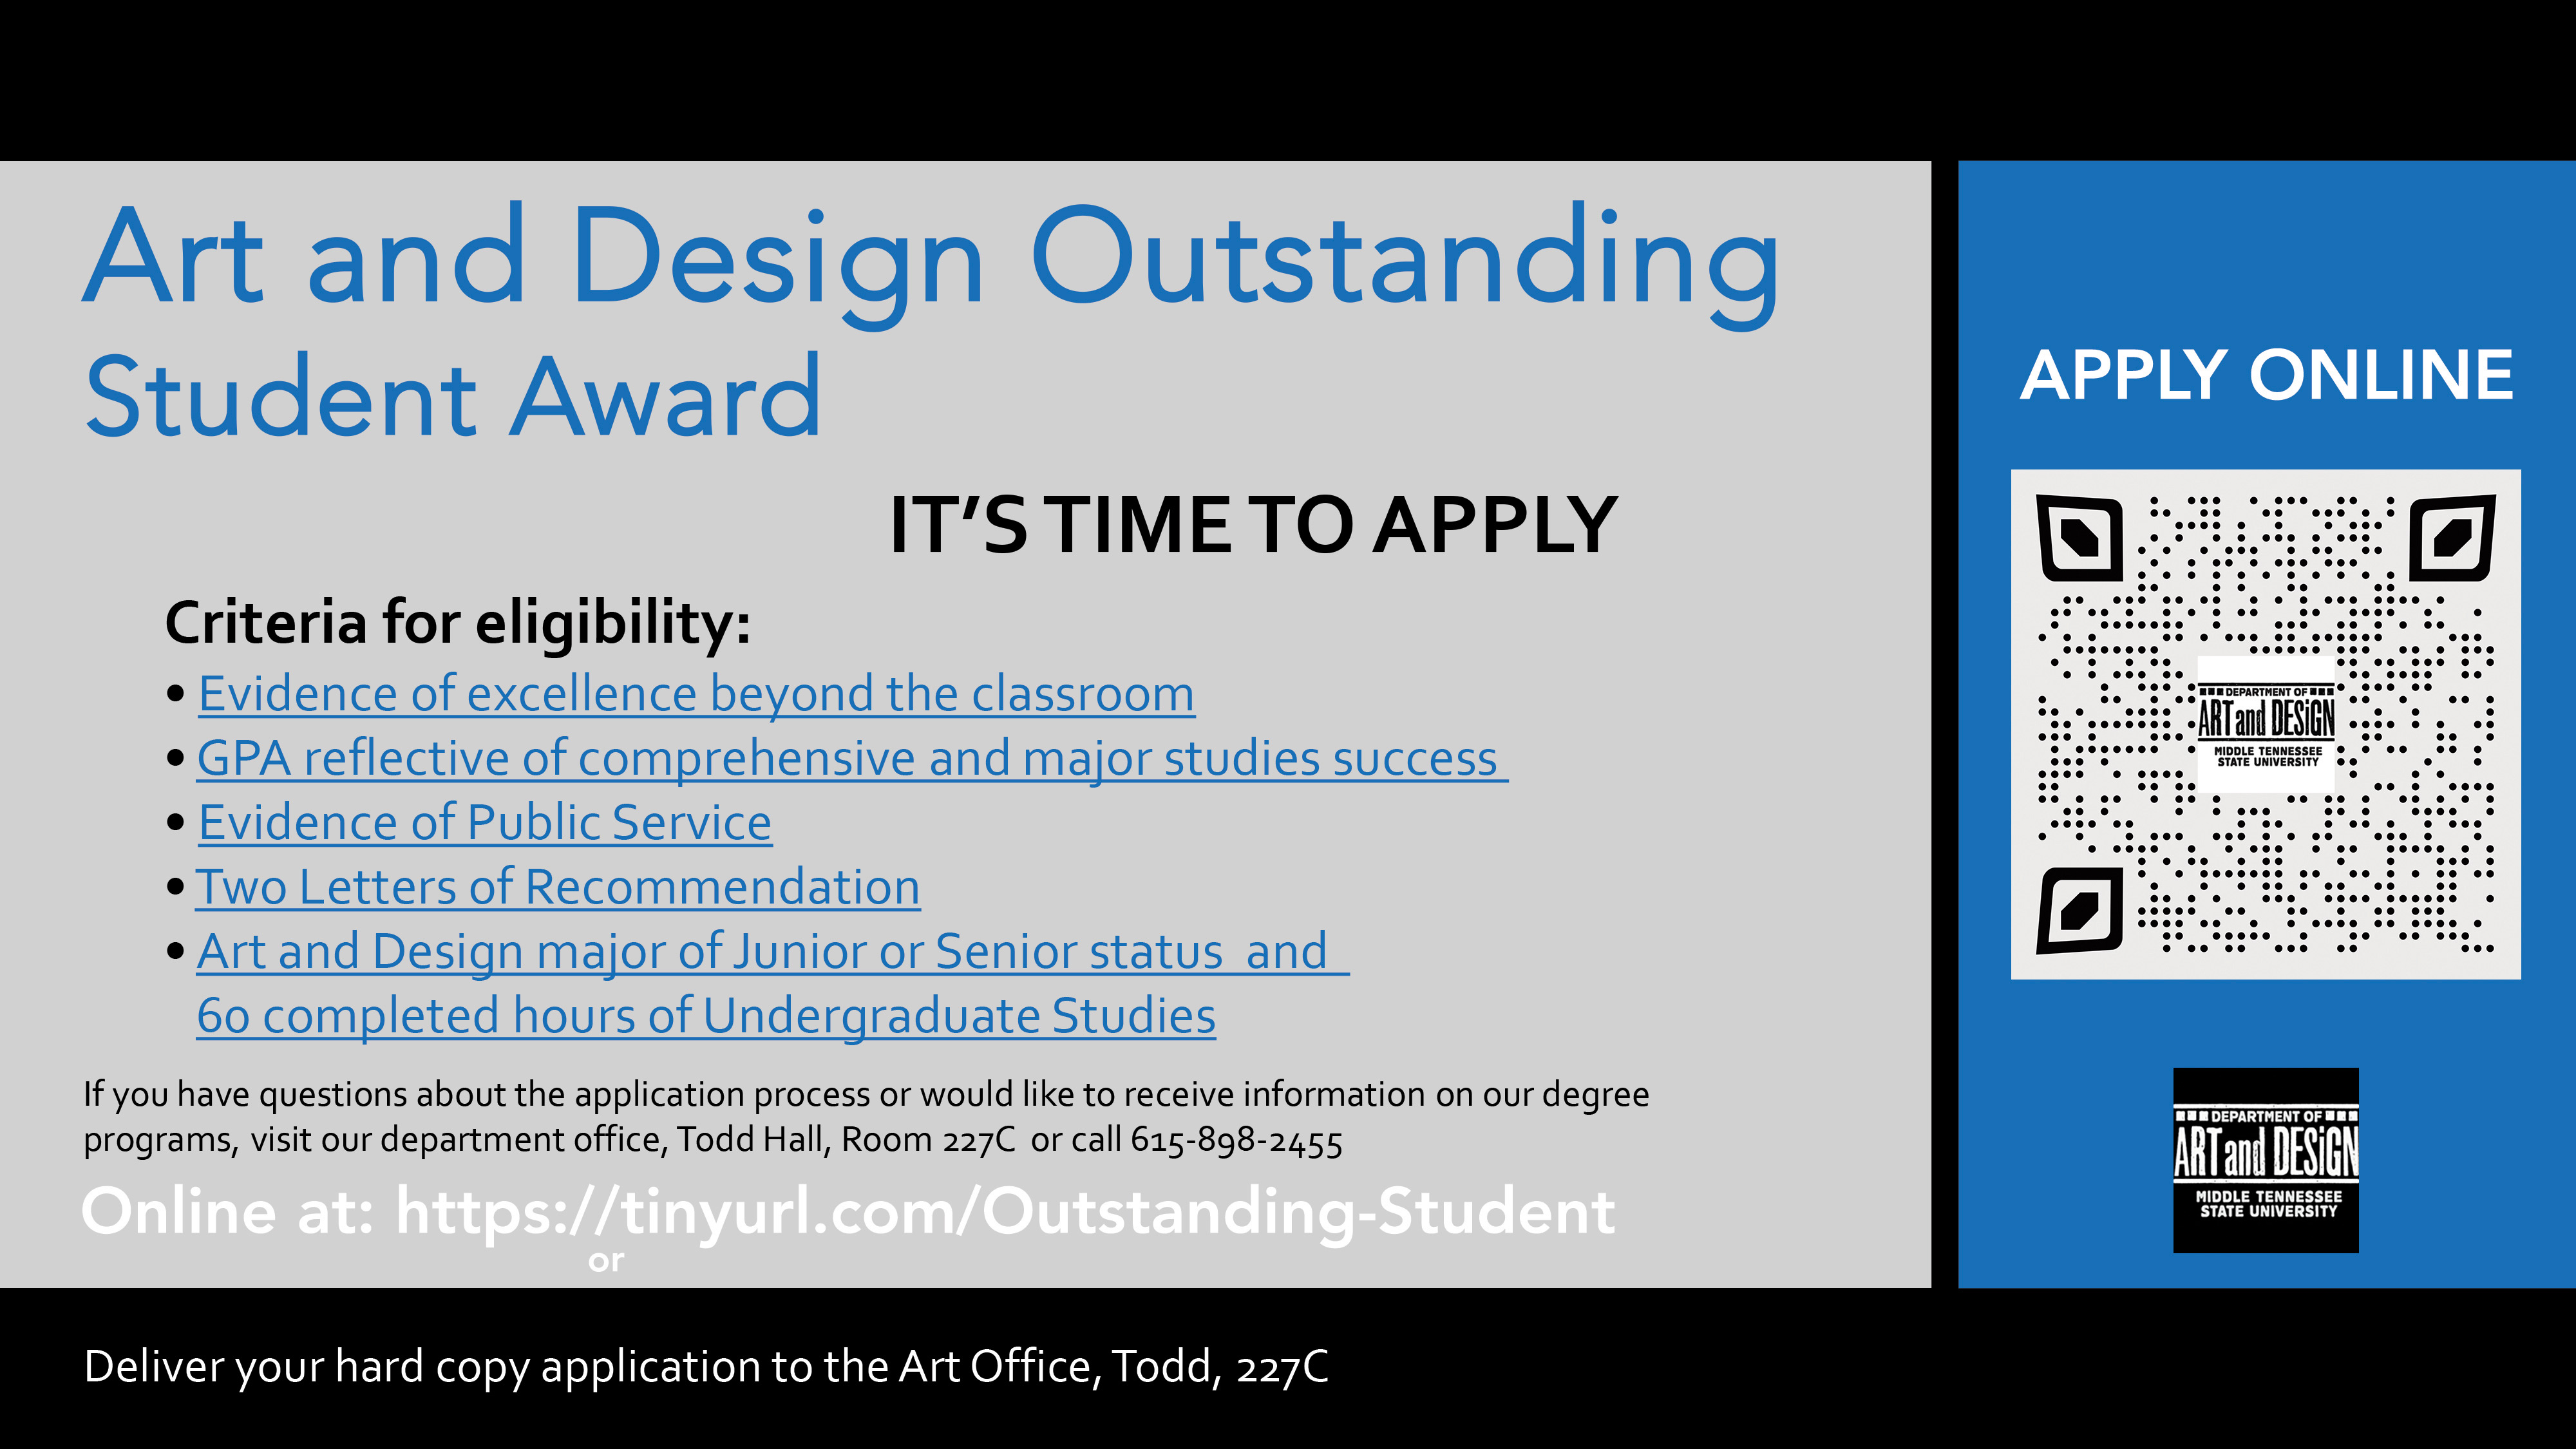 Art and Design Outstanding Student Criteria Image